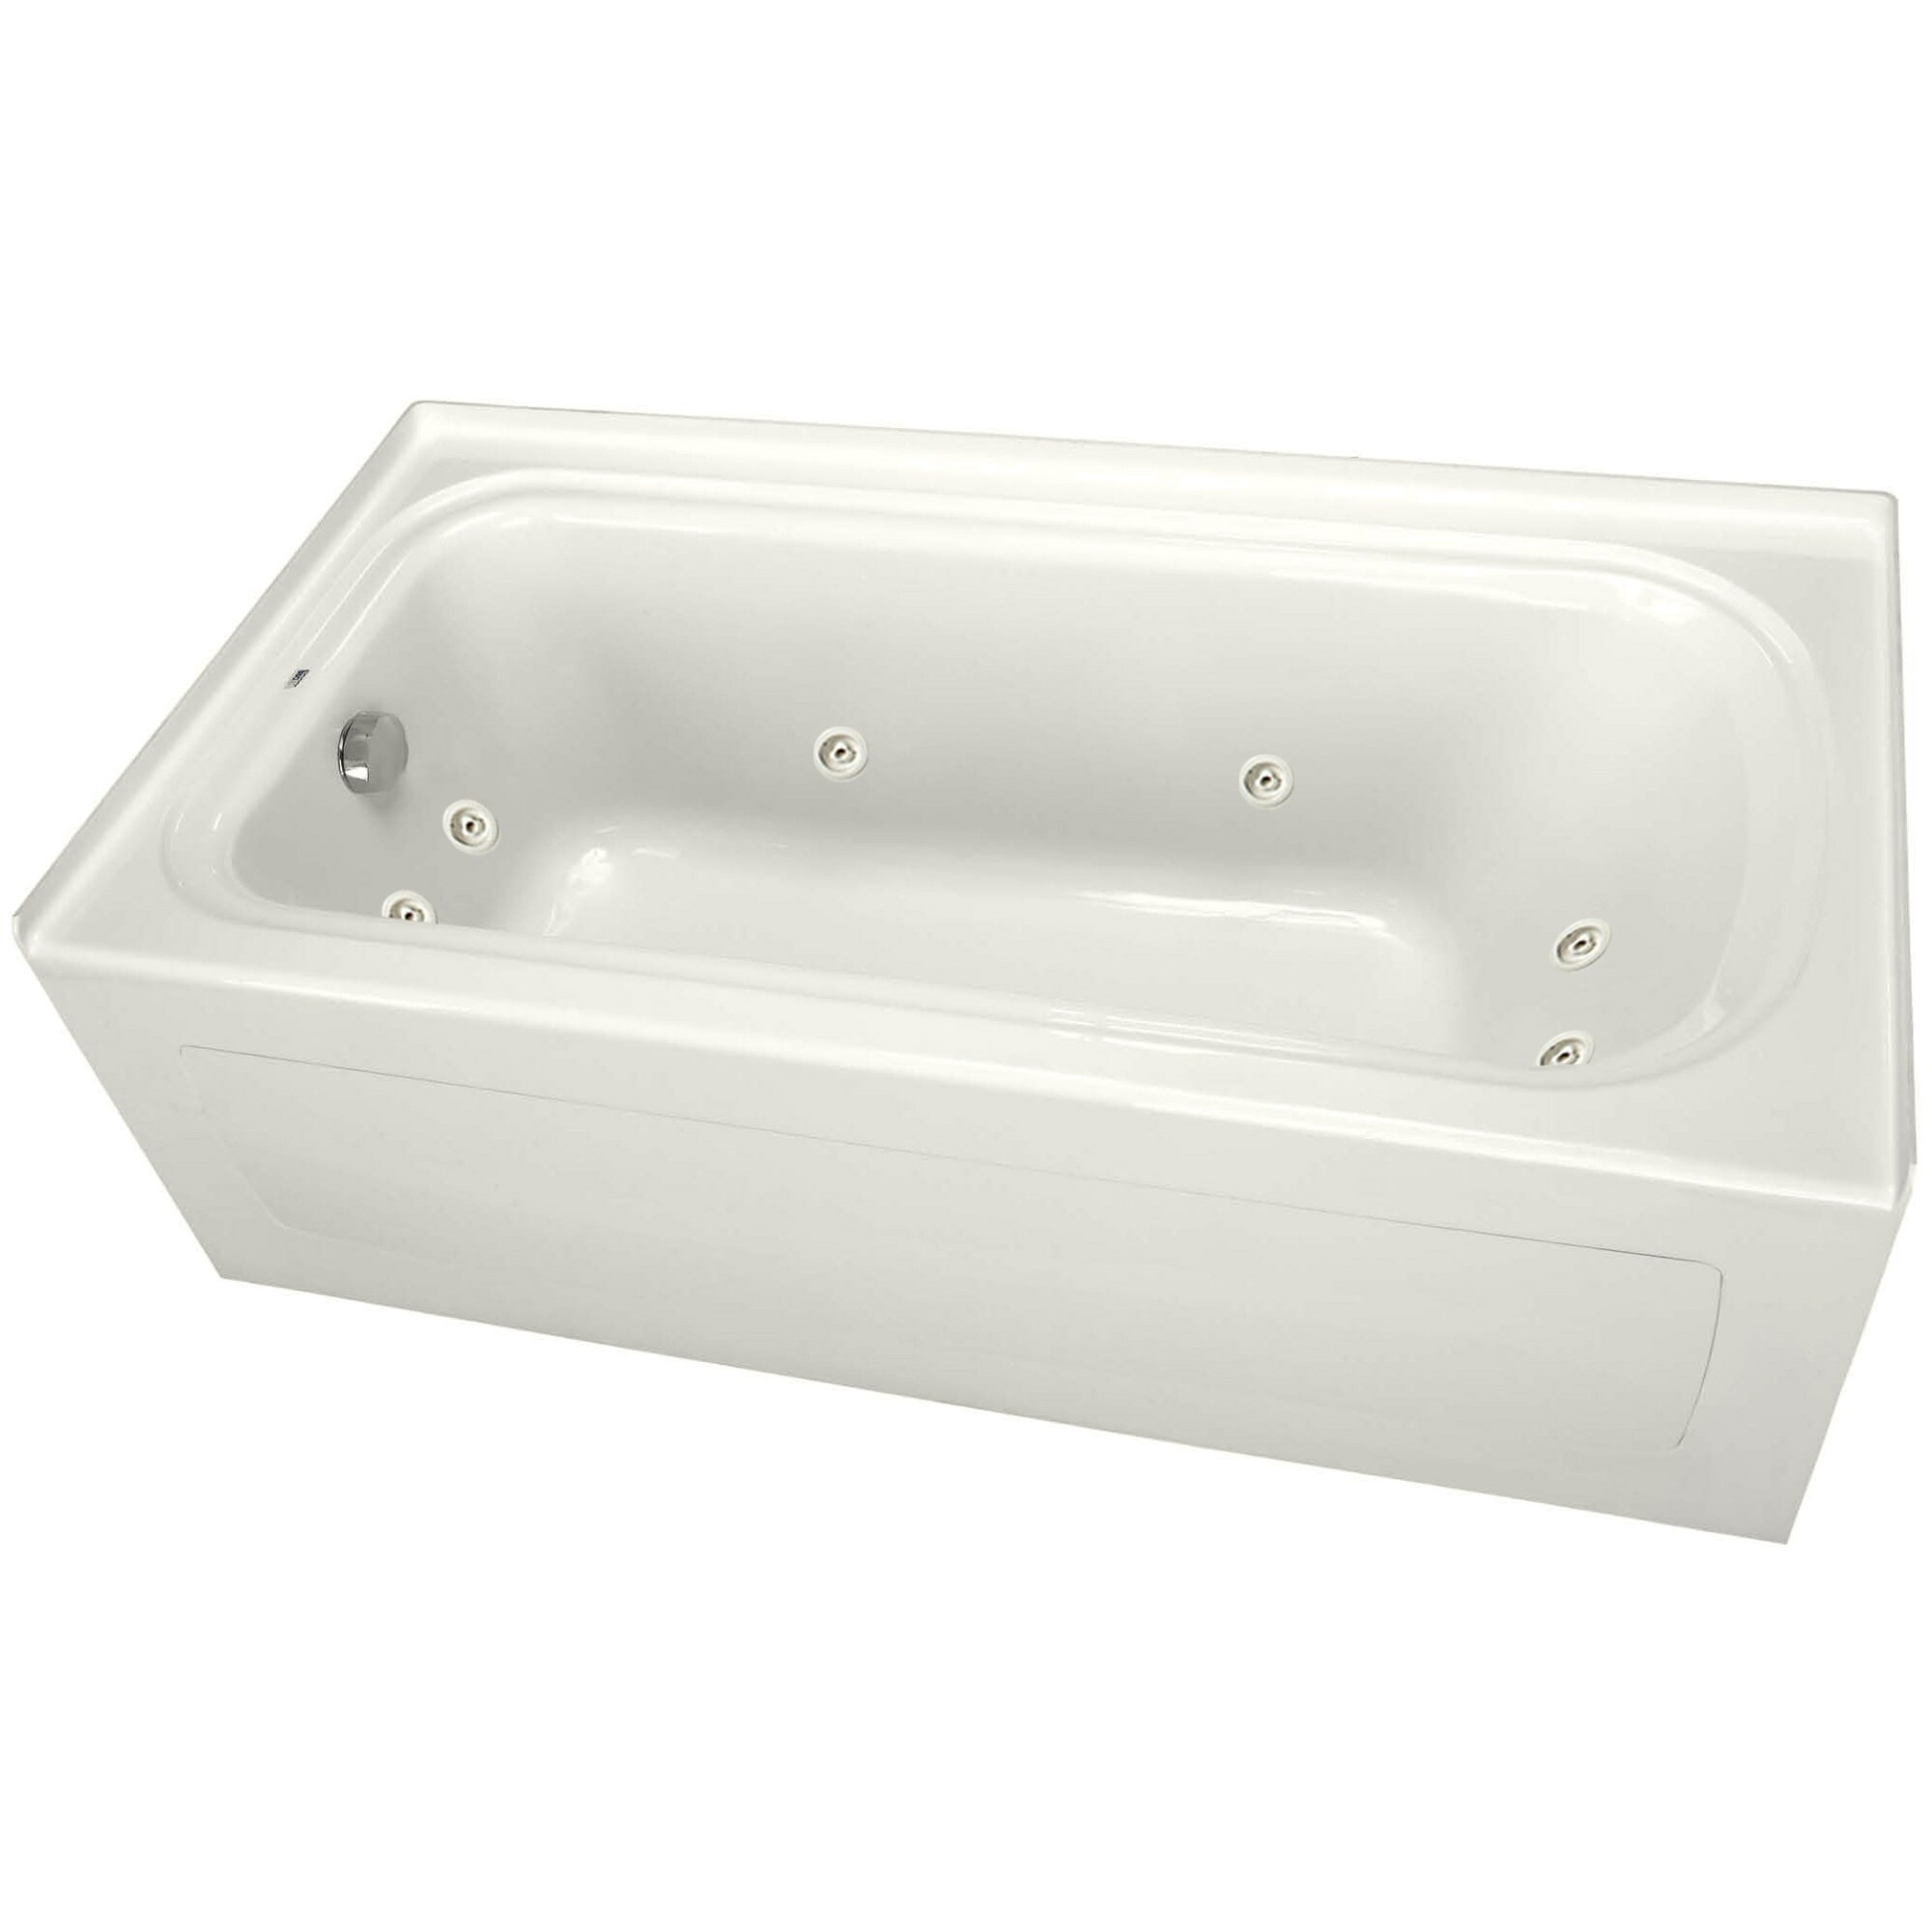 Proflo Pfw7236alsk 72 X 36 Alcove 8 Jet Whirlpool Bath Tub With Skirt Left Drain And Right Hand Pump On Sale Overstock 16906977